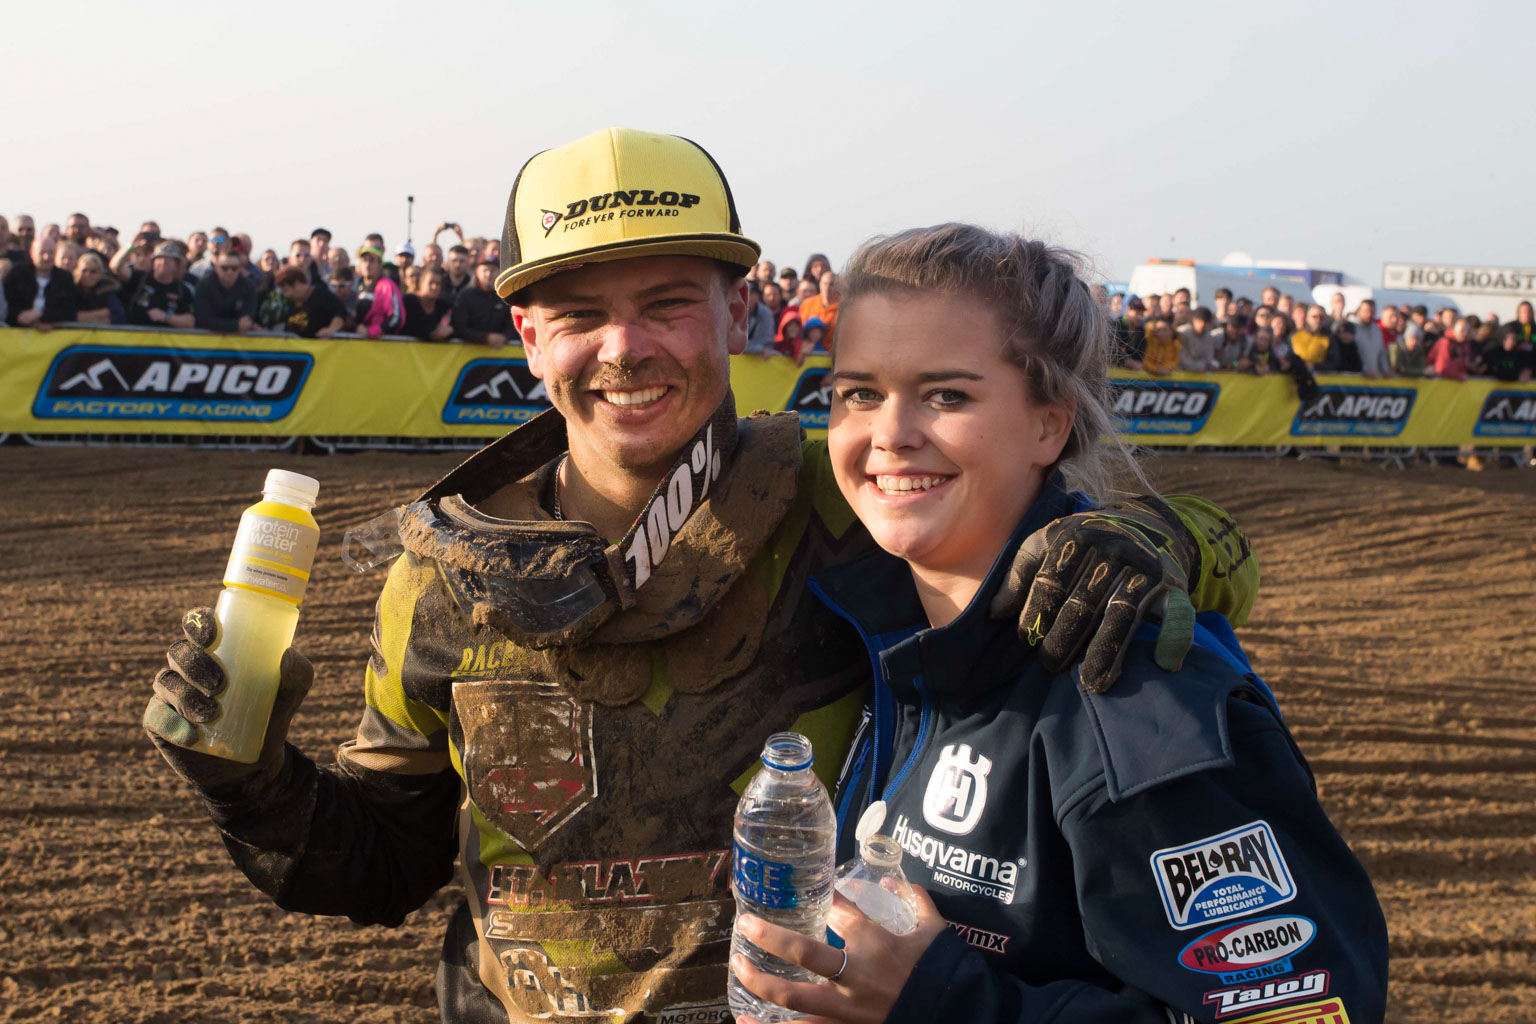 Winner Todd Kellett (St Blazey Husqvarna) with girlfriend